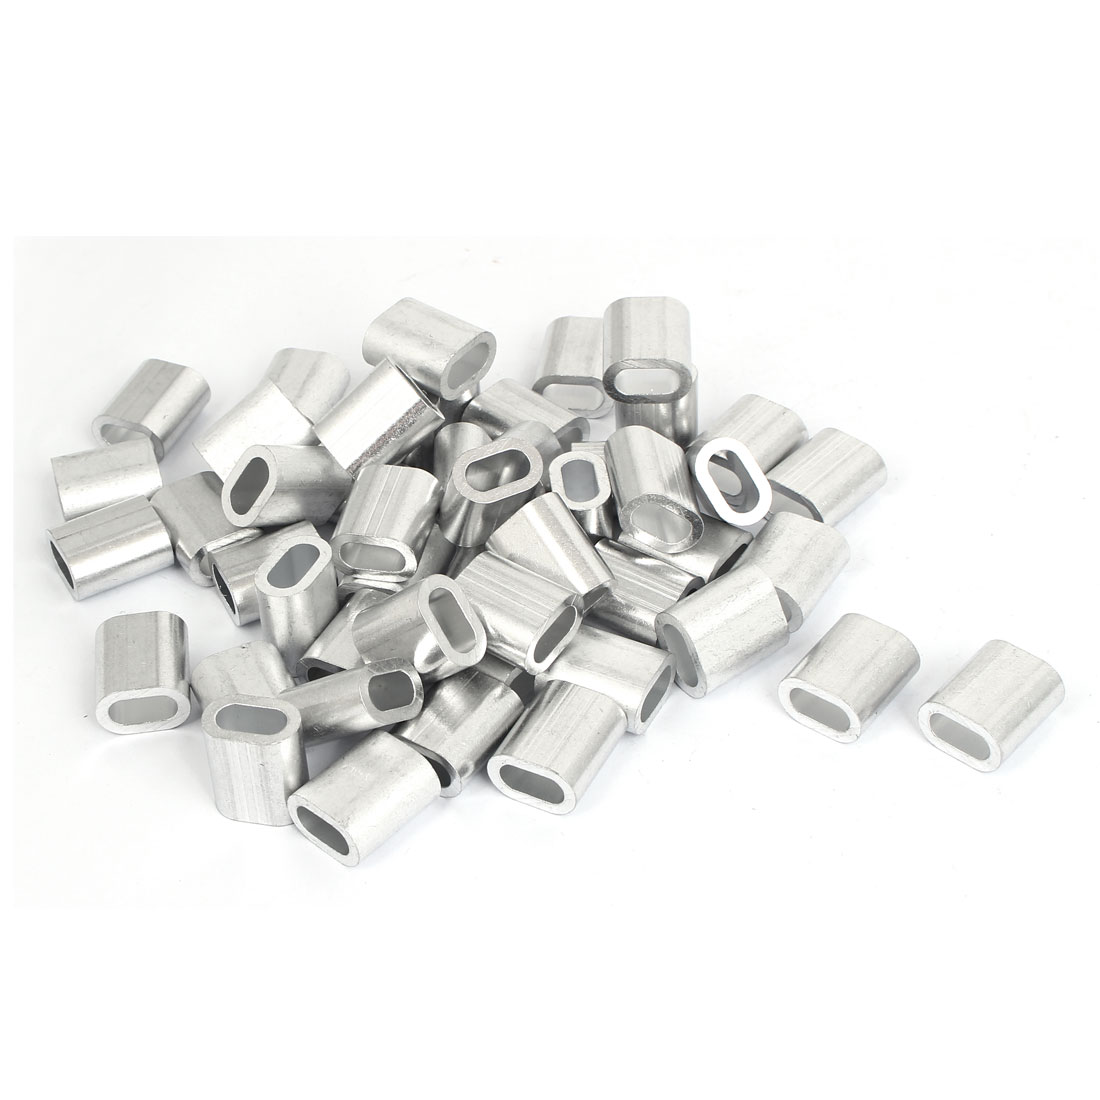 50 Pcs M6 Aluminium Ferrule Cable Crimps Sleeves Silver Tone